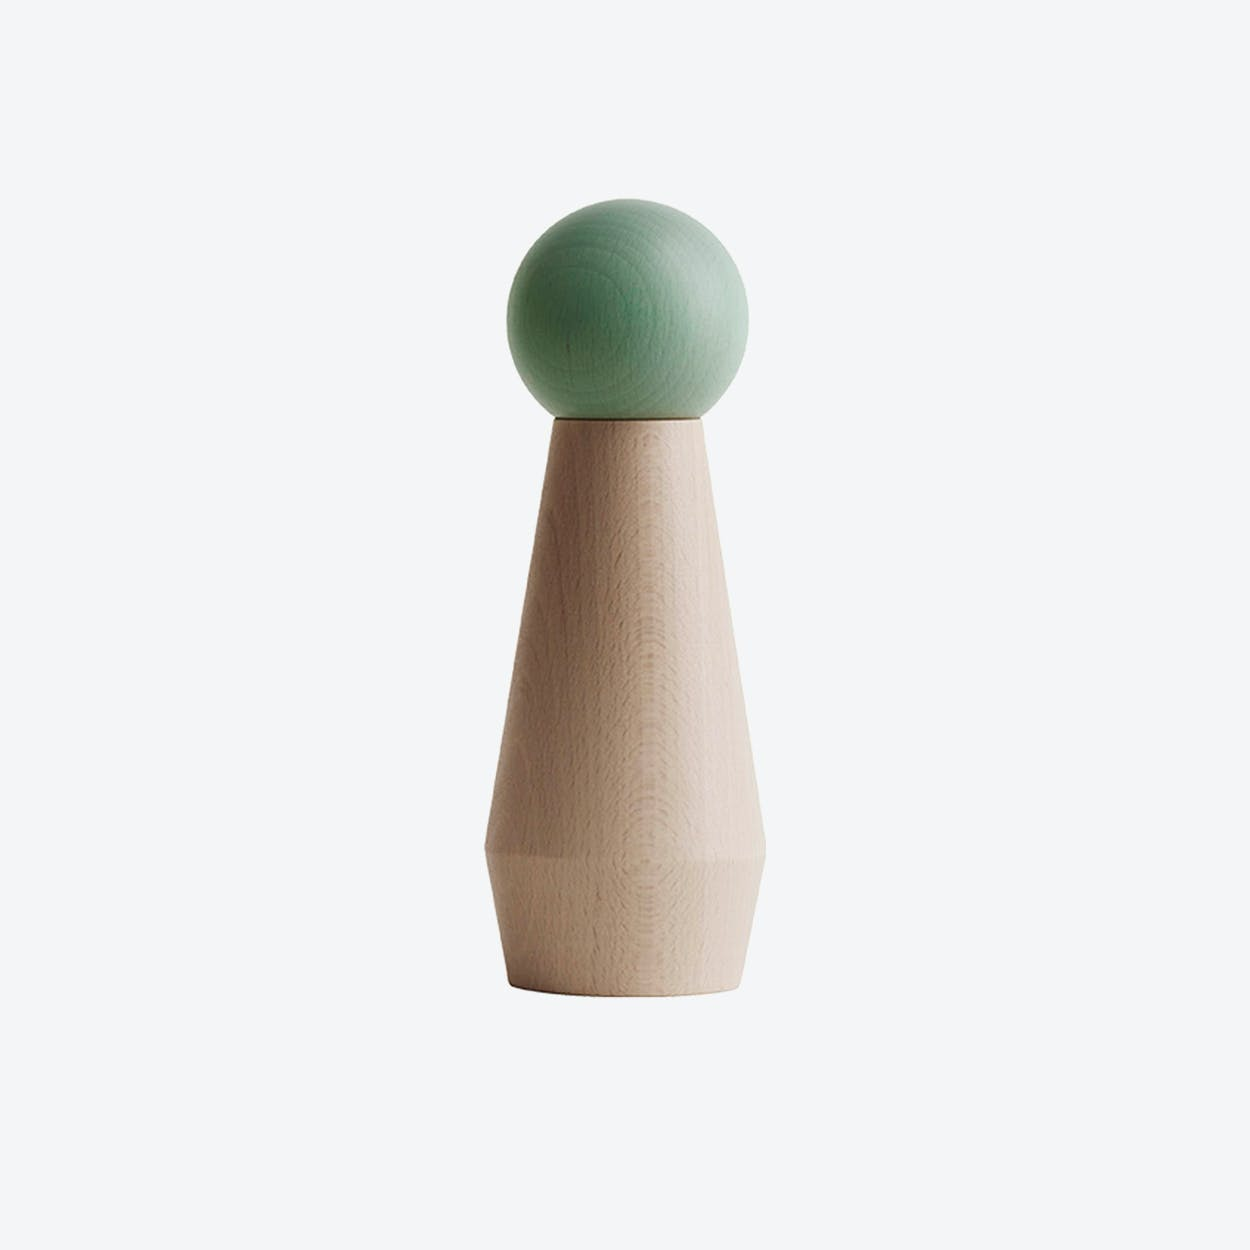 My Salt & Pepper Mill in Mint